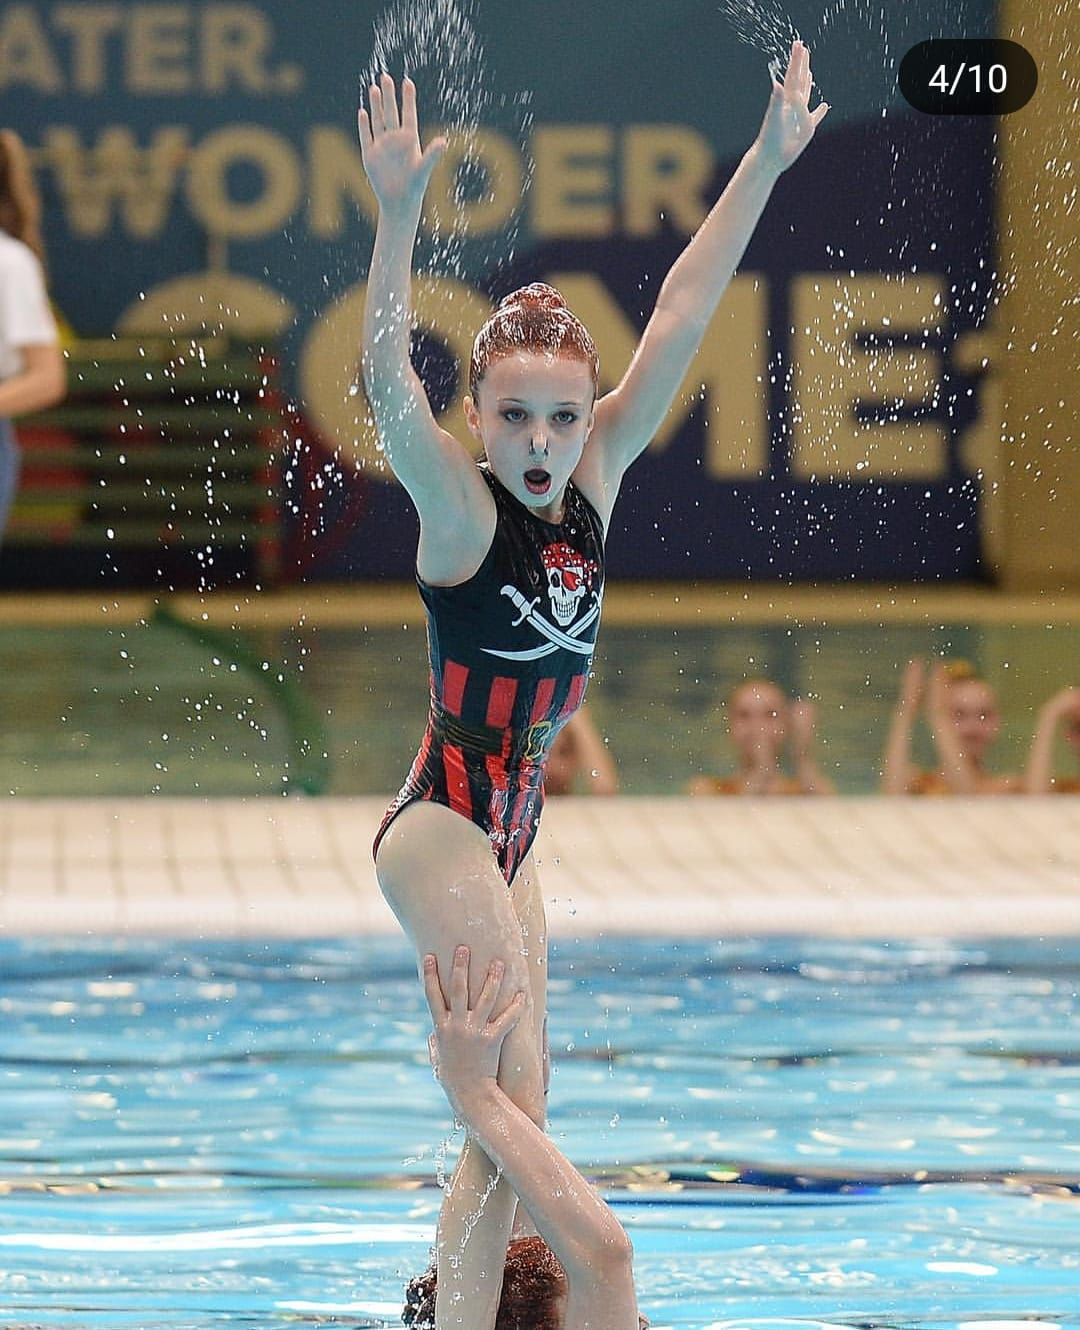 Pirate synchronised swimmer